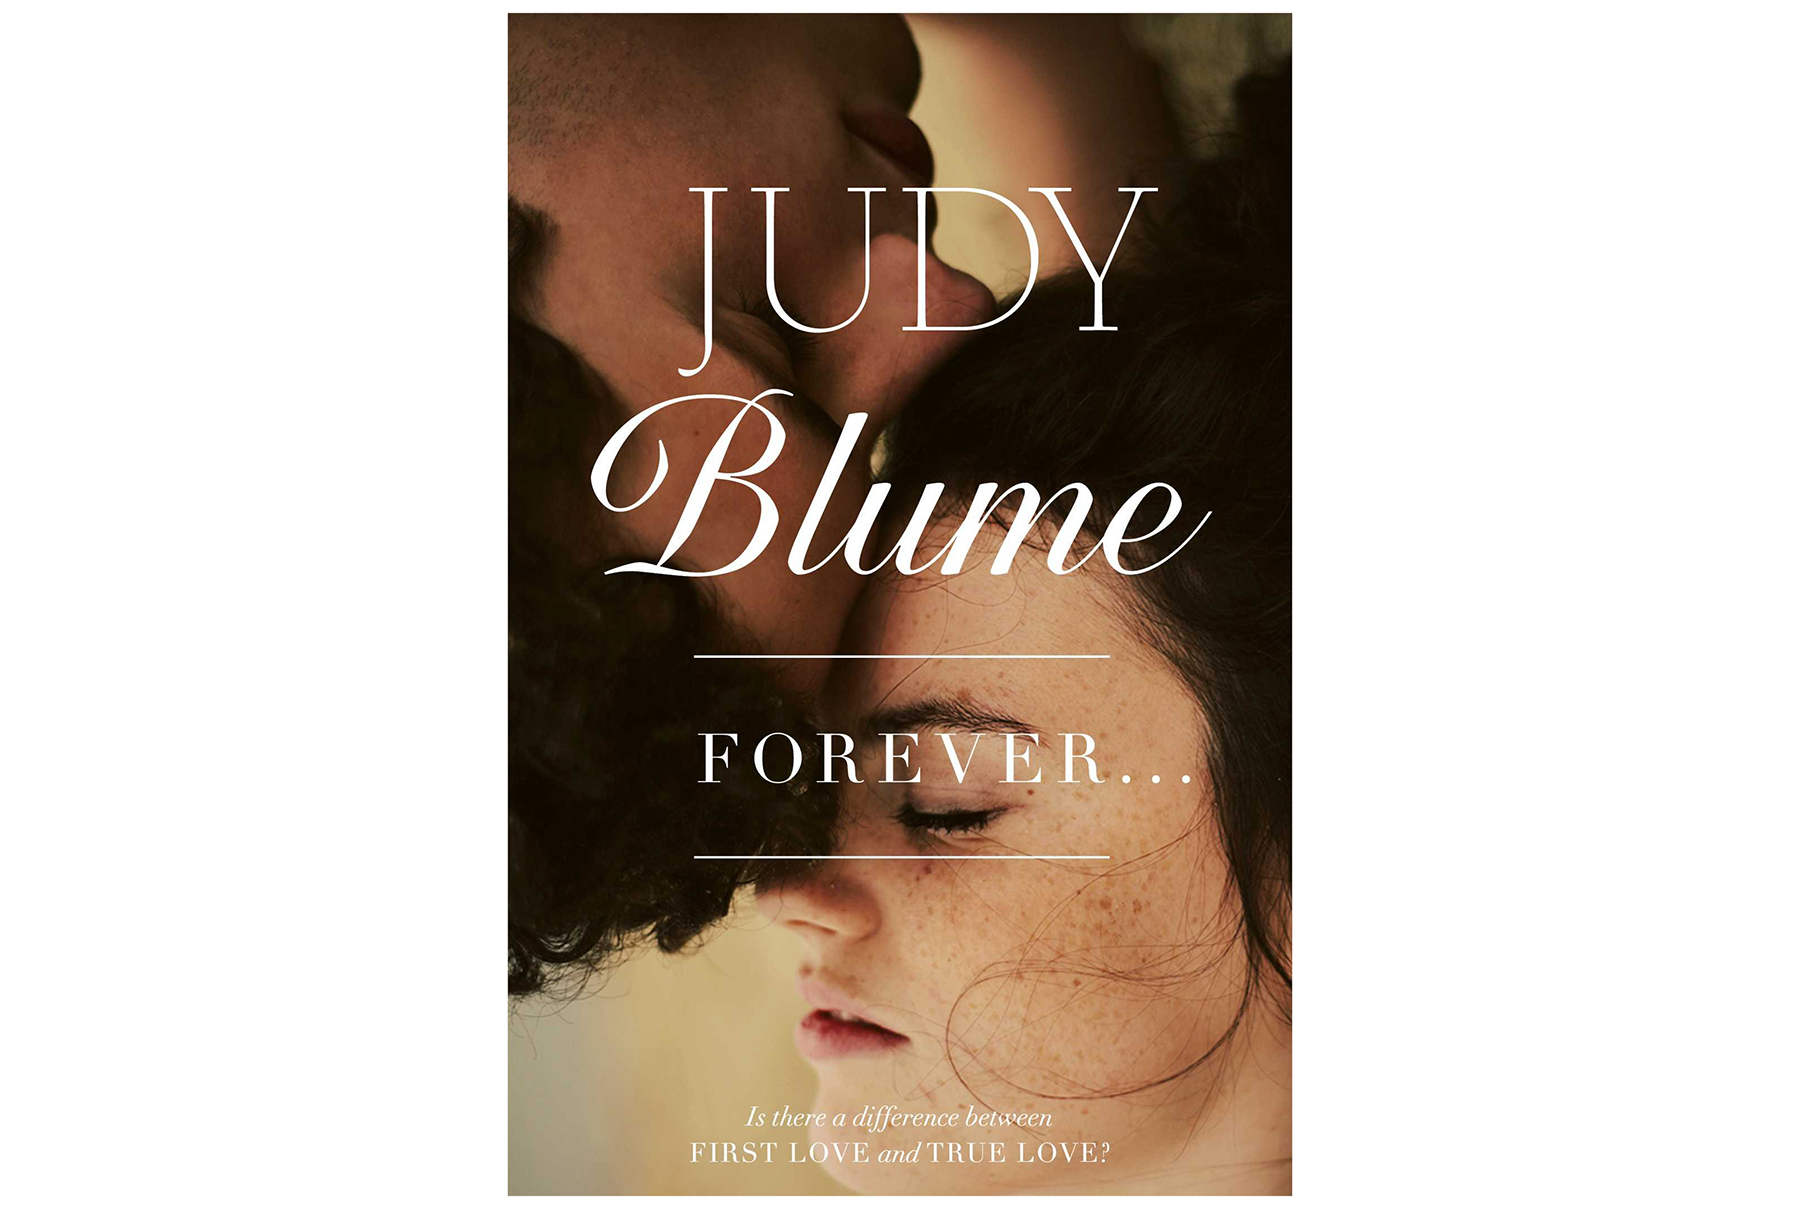 Forever, by Judy Blume (Banned Books 2017)